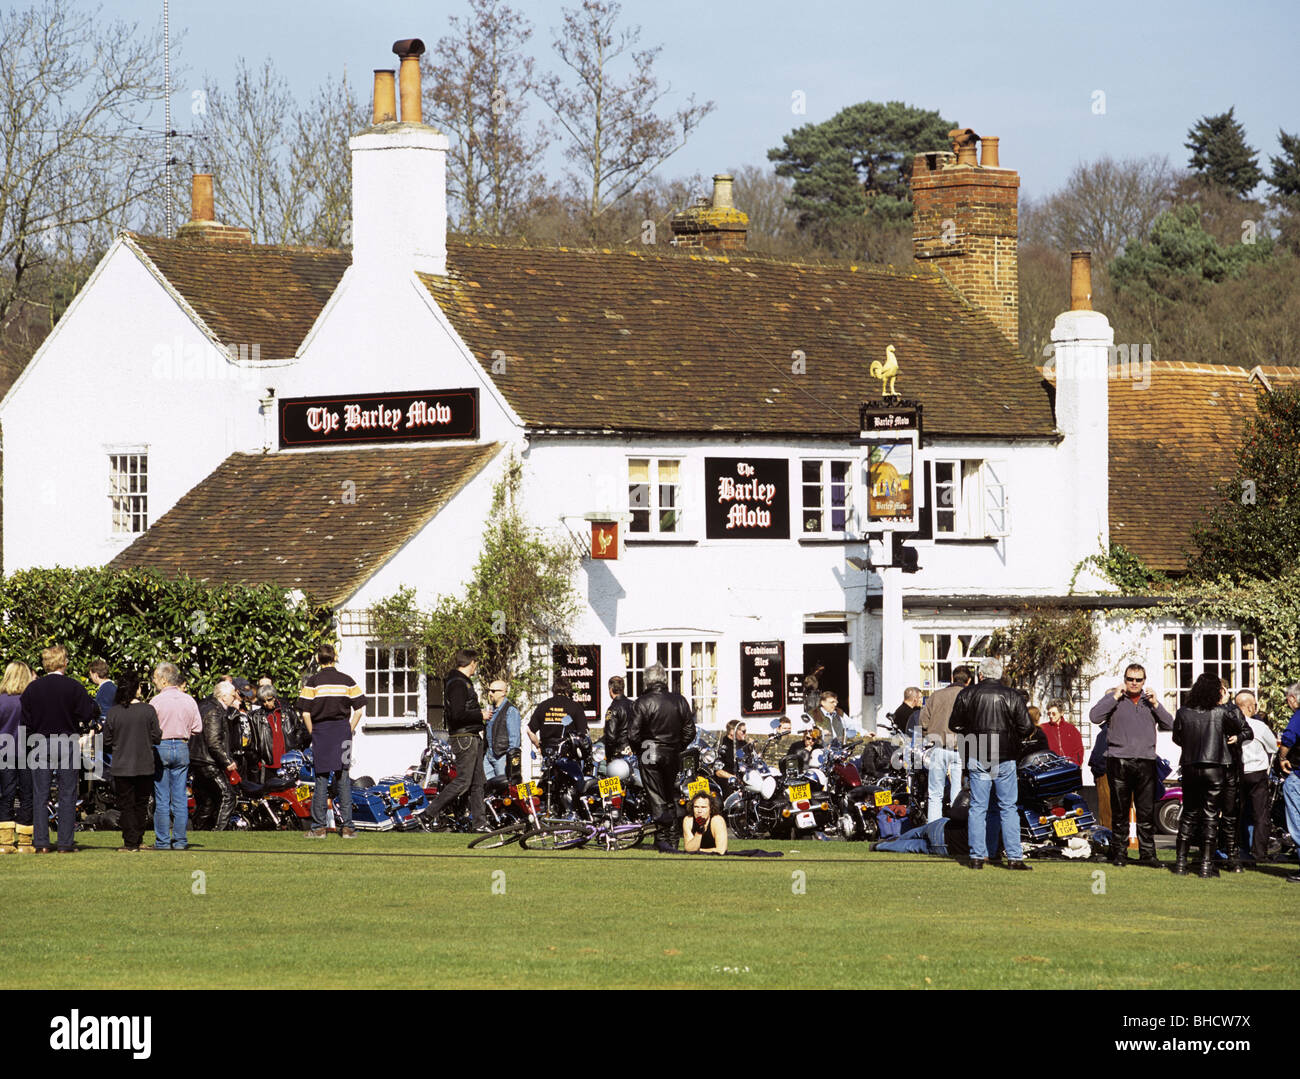 Harley Davidson motorbikes at bikers annual rally parked outside country pub on village green in Tilford, Surrey, - Stock Image